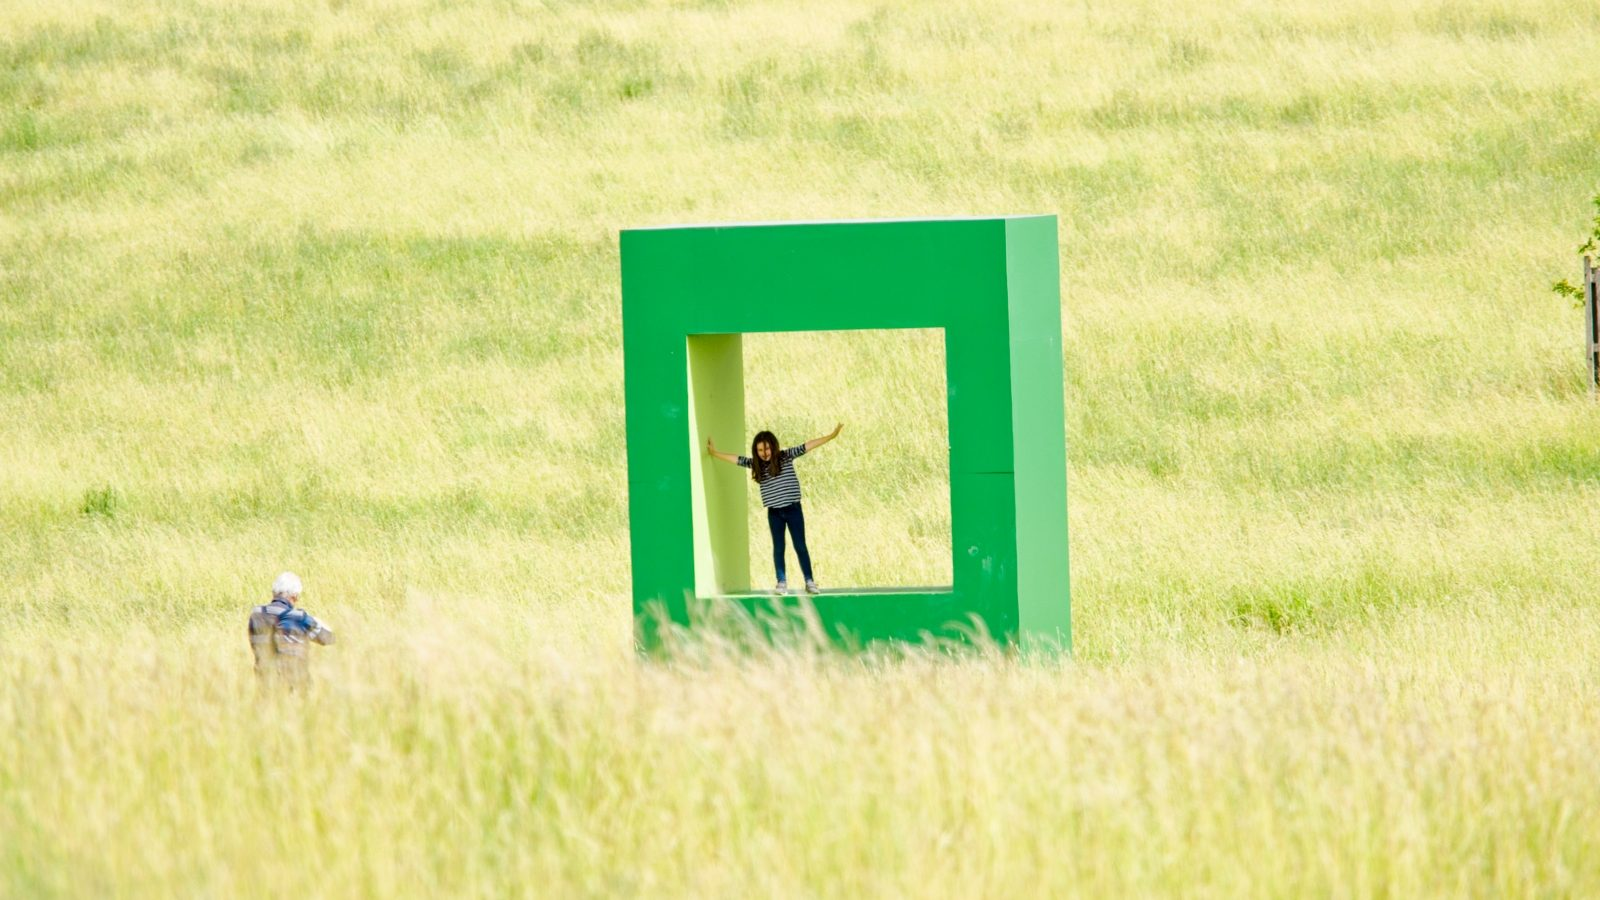 Compton Verney has hosted Krijn de Koning's Green Dwellling installation throughout the pandemic